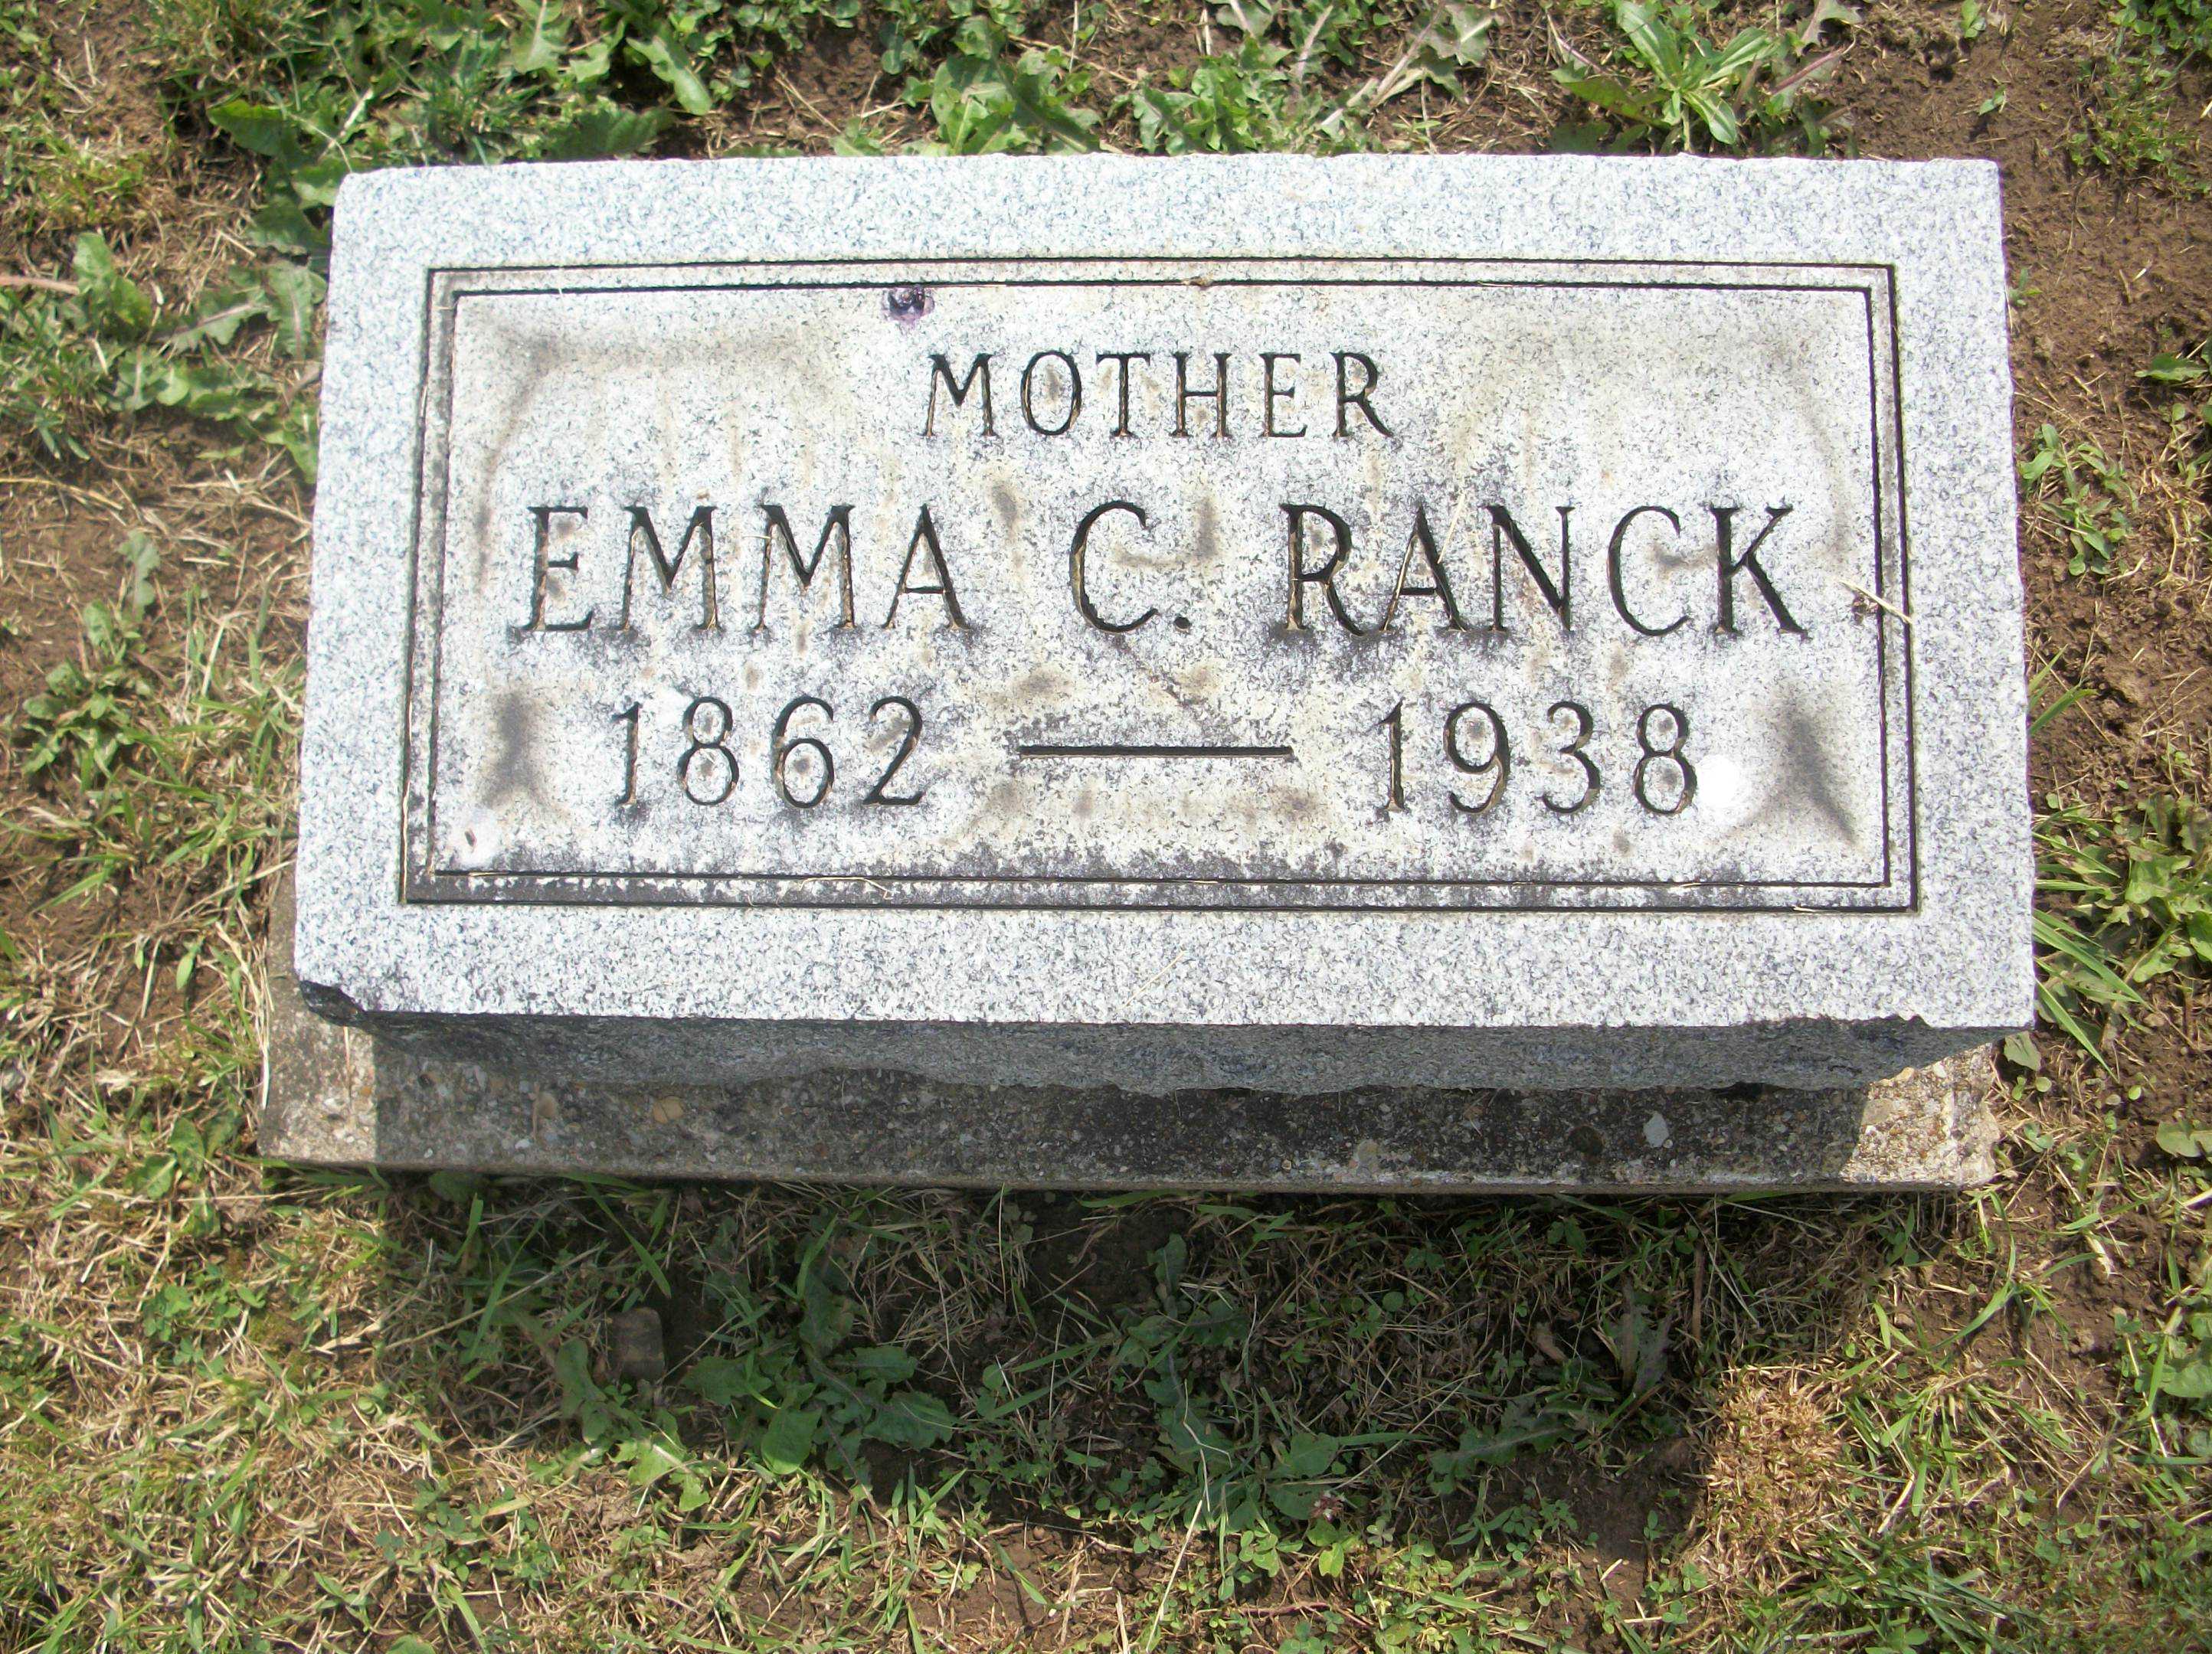 Emma Weimer Ranck of Franklin Ohio